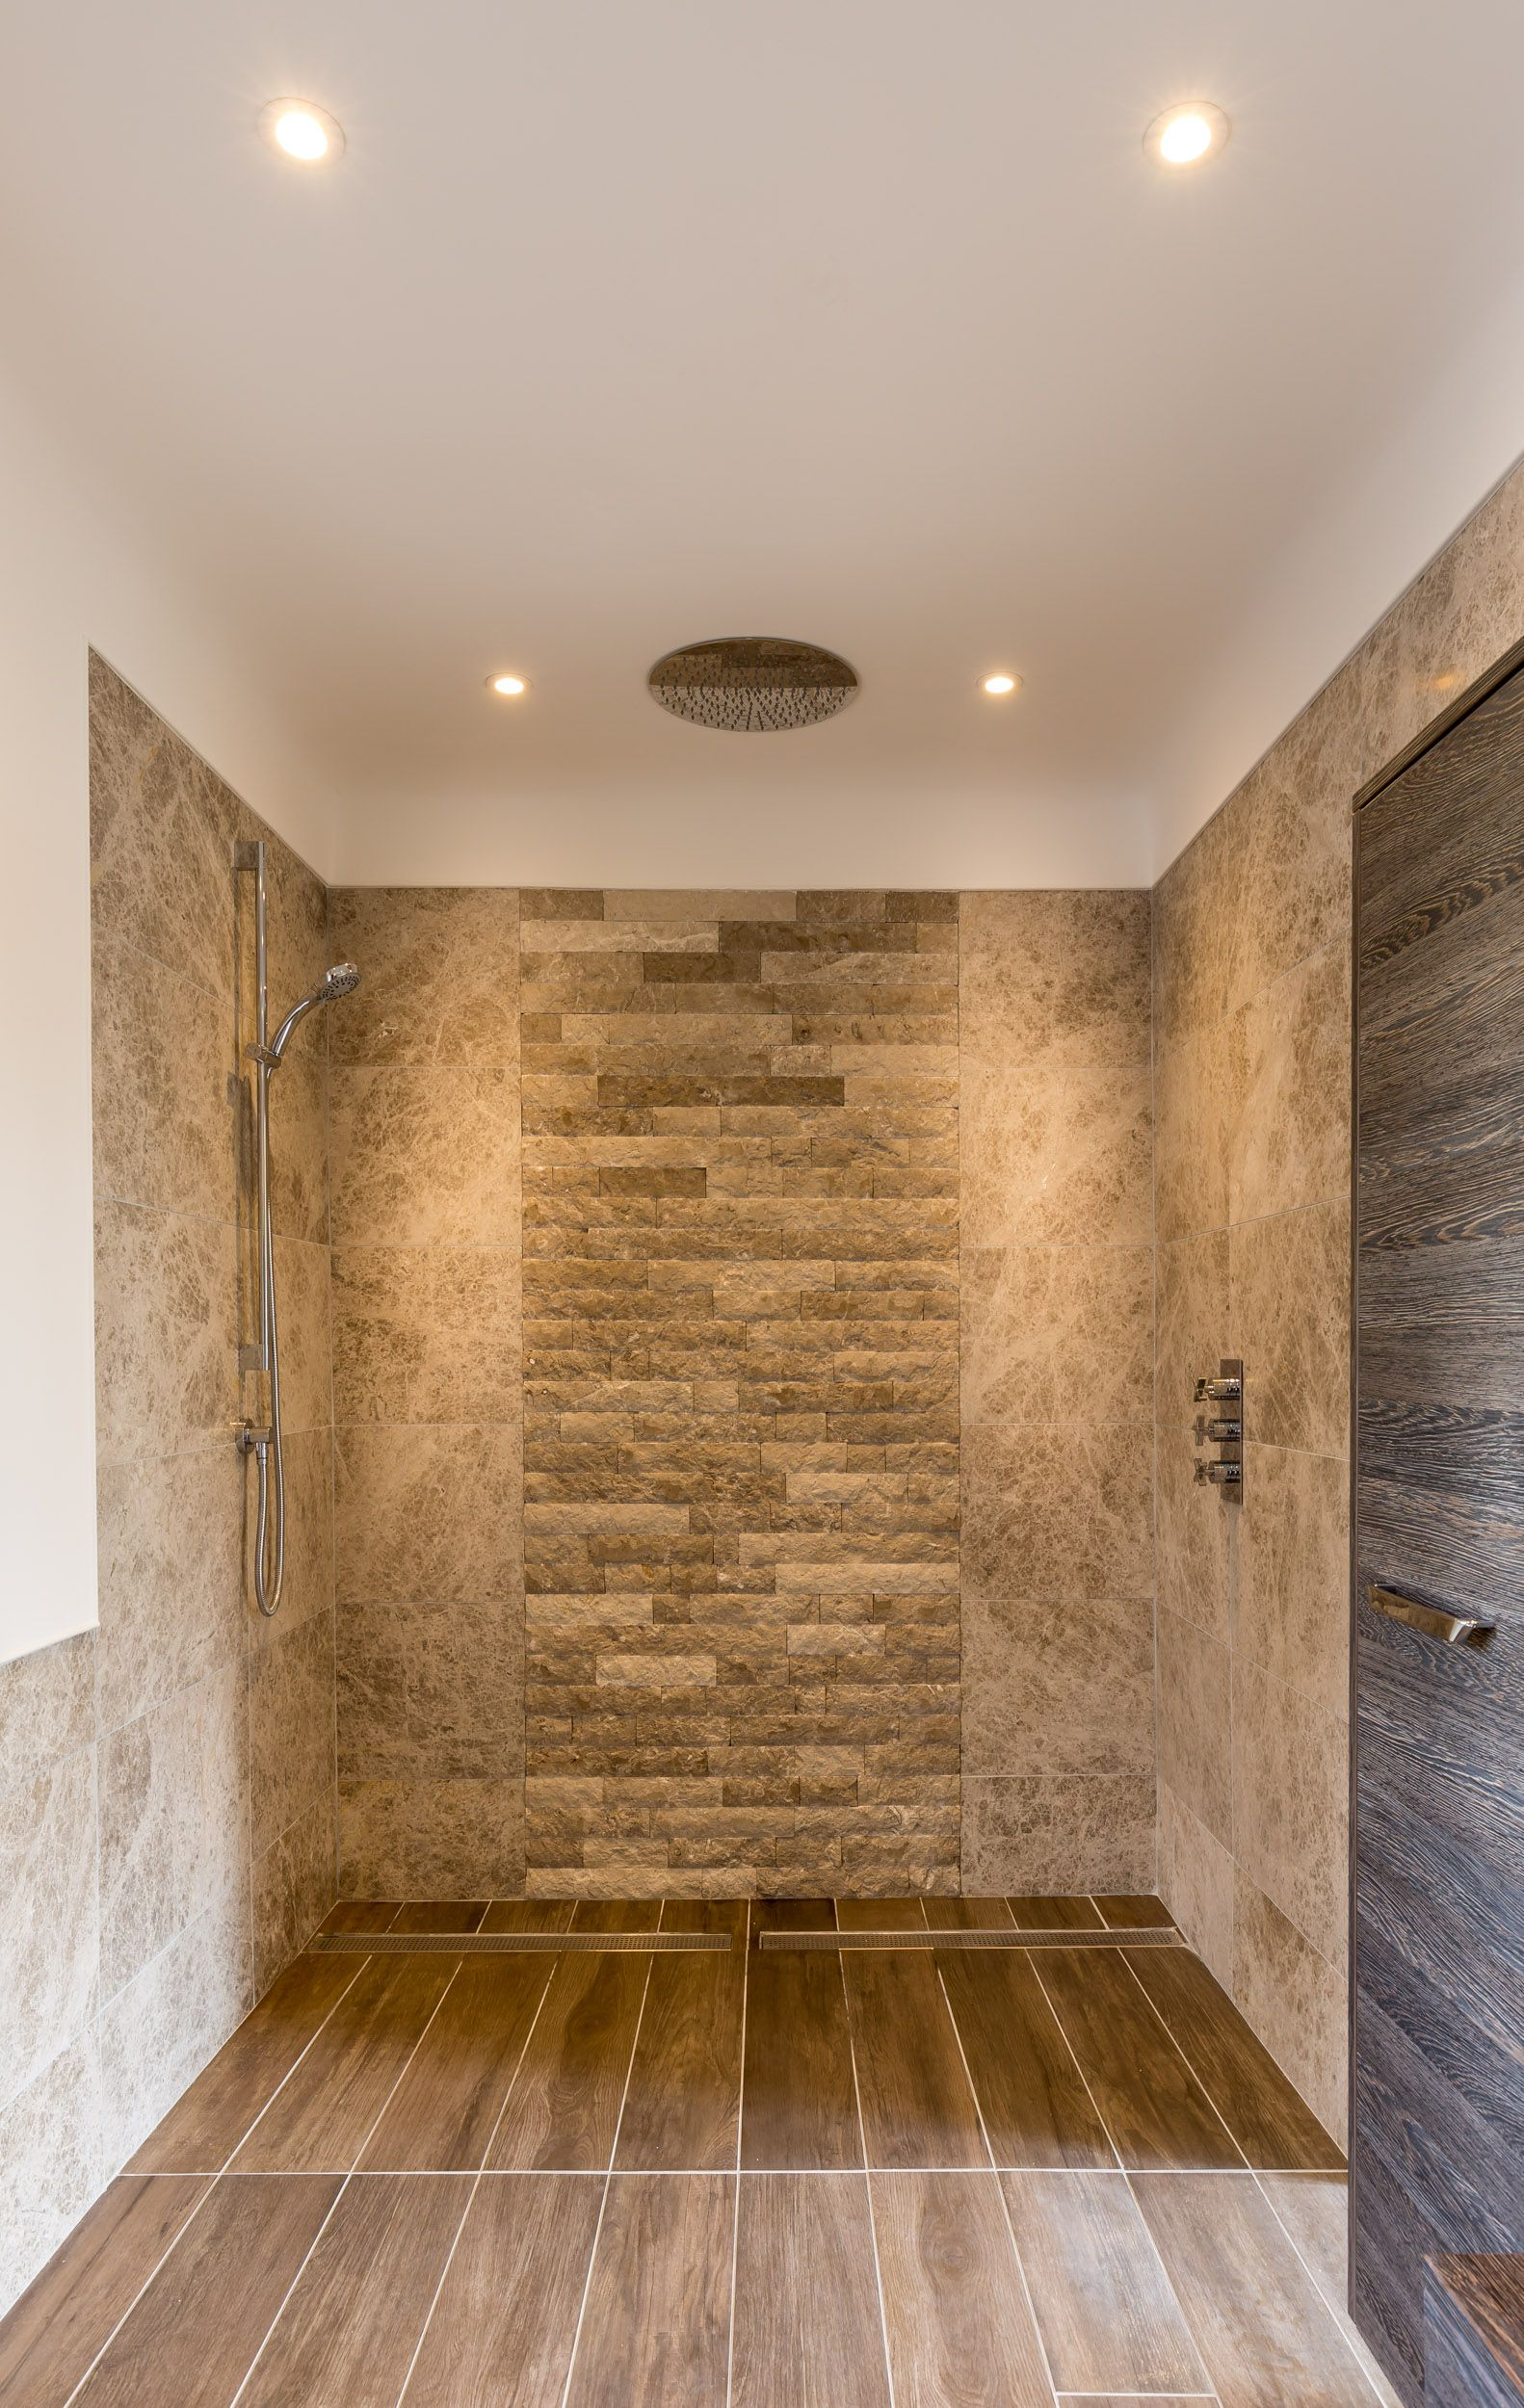 Rustic Walls Interior Large Contemporary Walk In Shower With Feature Rustic Stone Wall